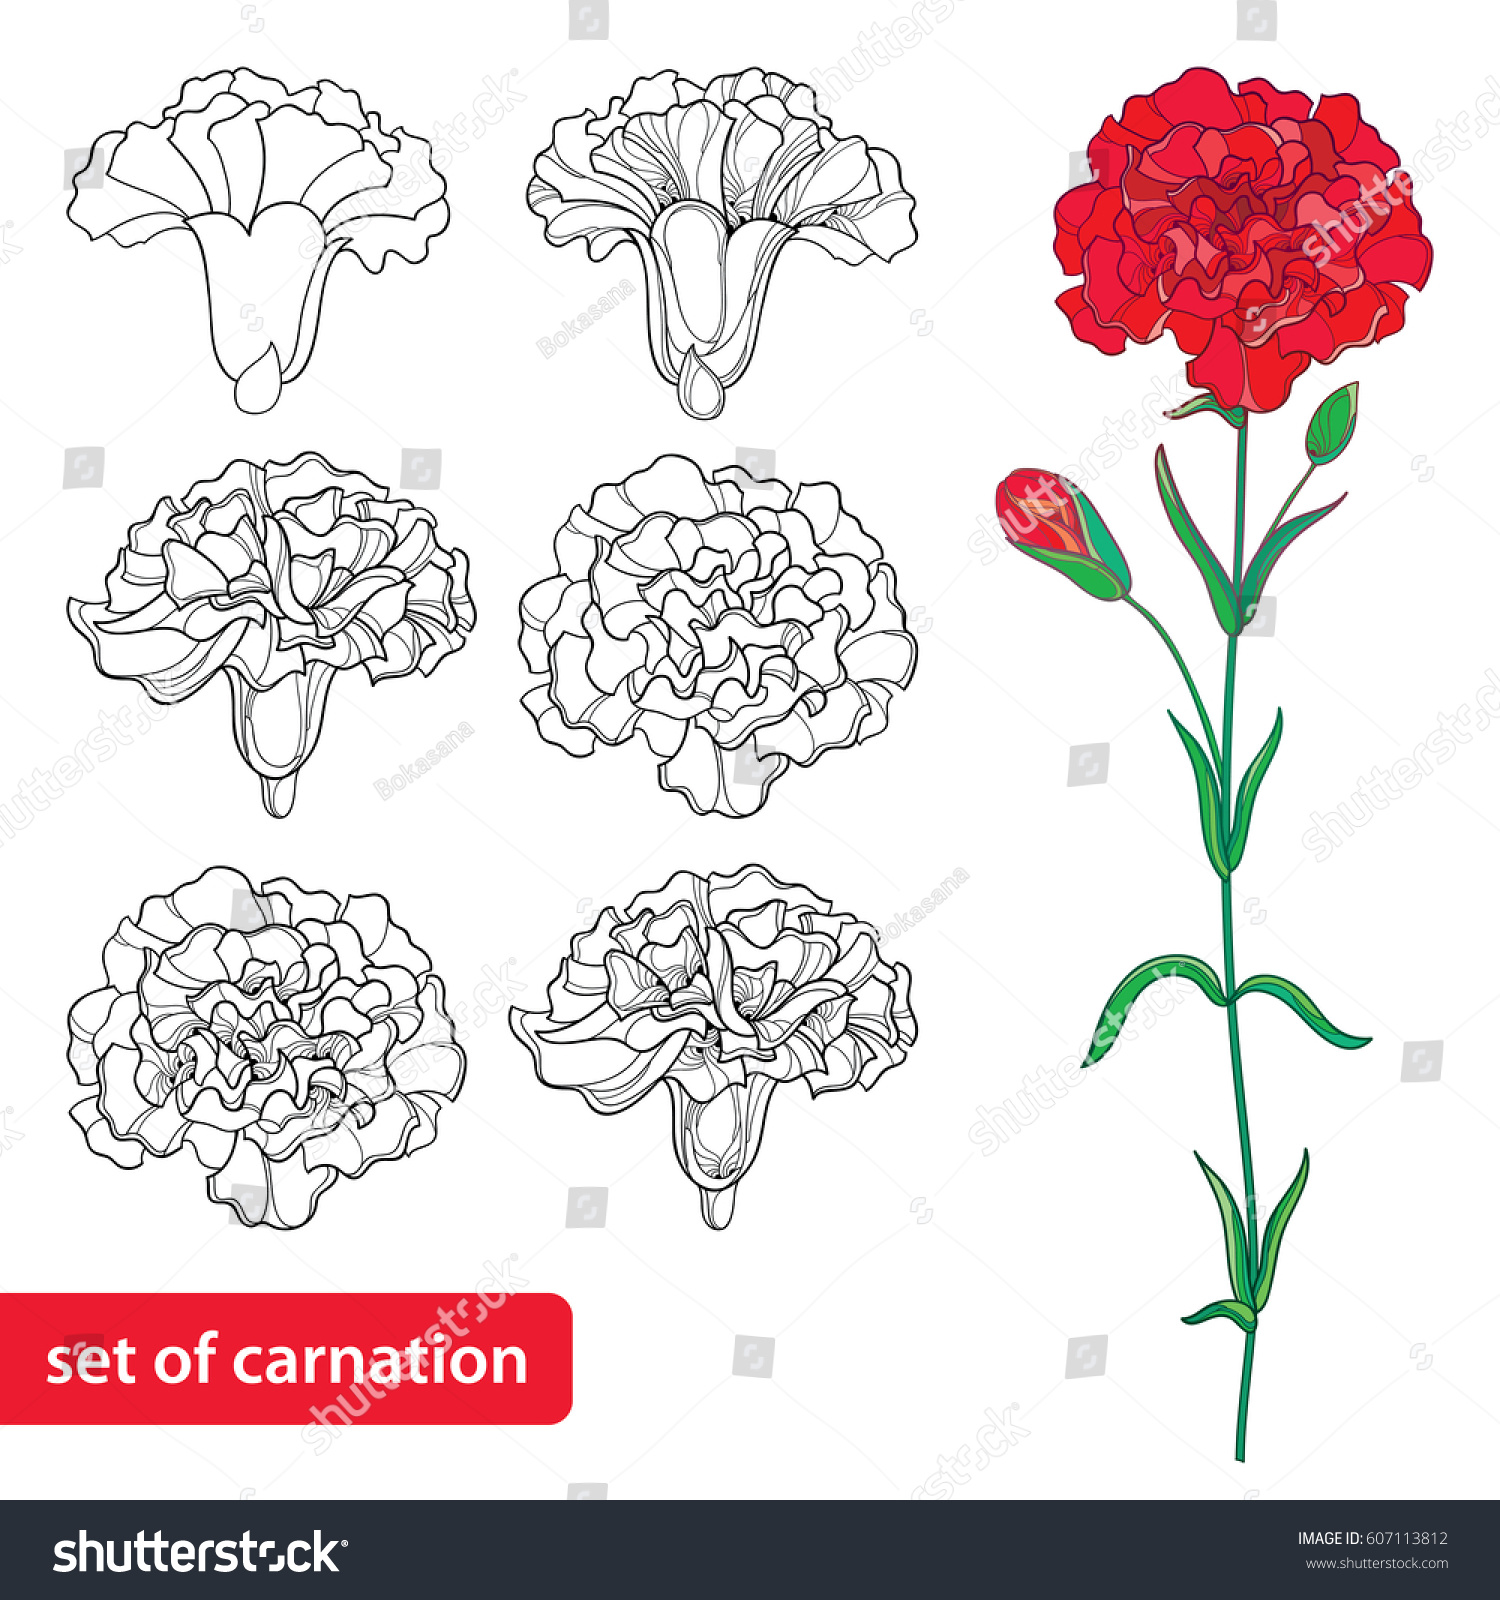 vector set outline carnation clove flower stock vector 607113812